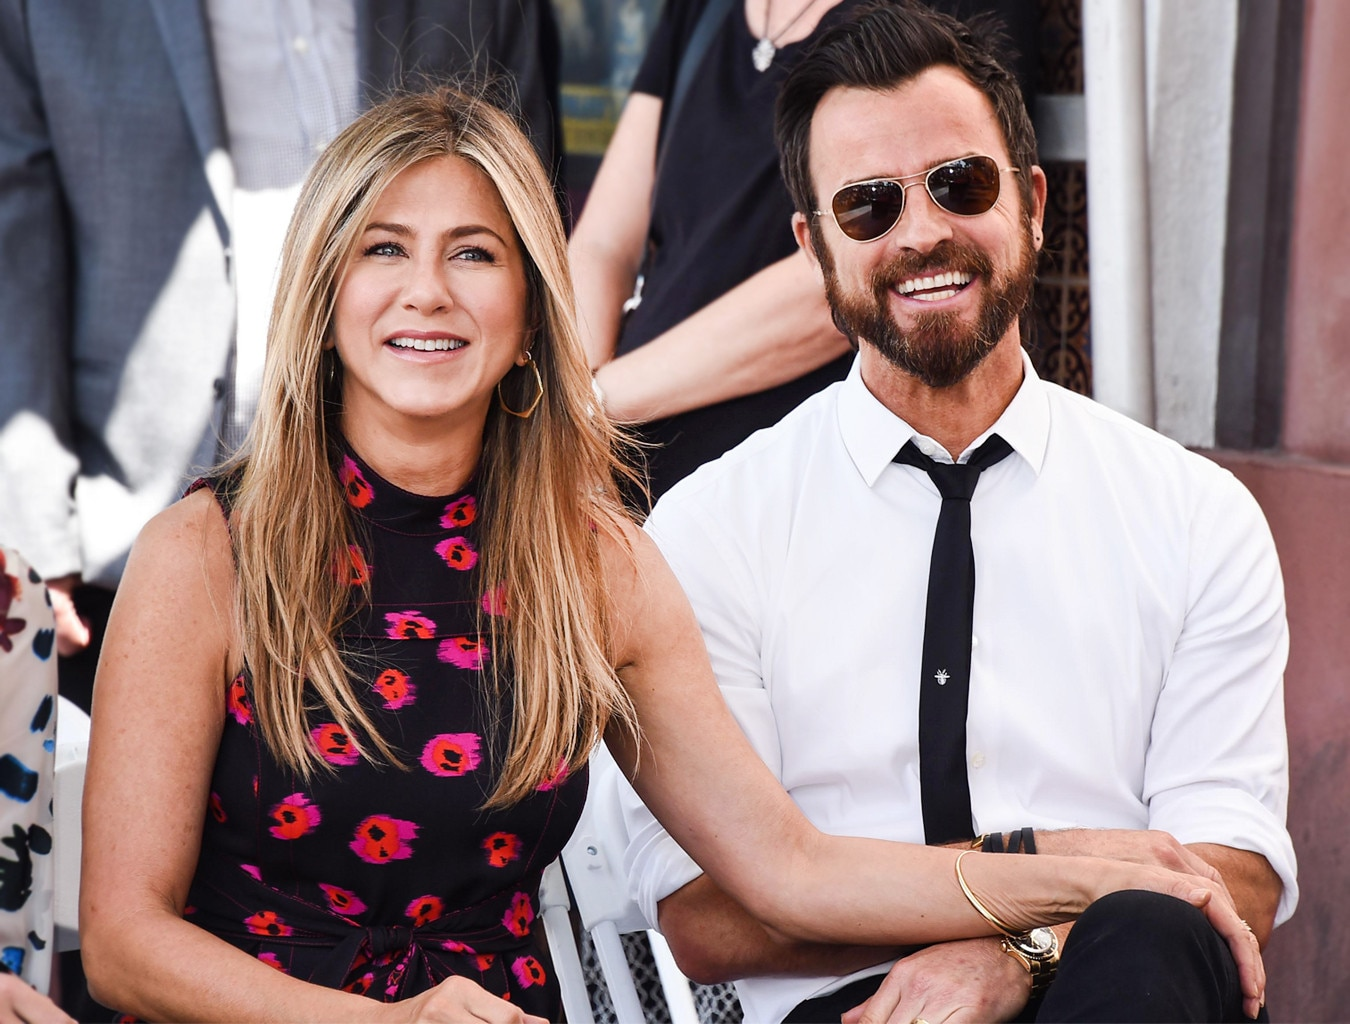 Jennifer Aniston and Justin Theroux Not Married at all?